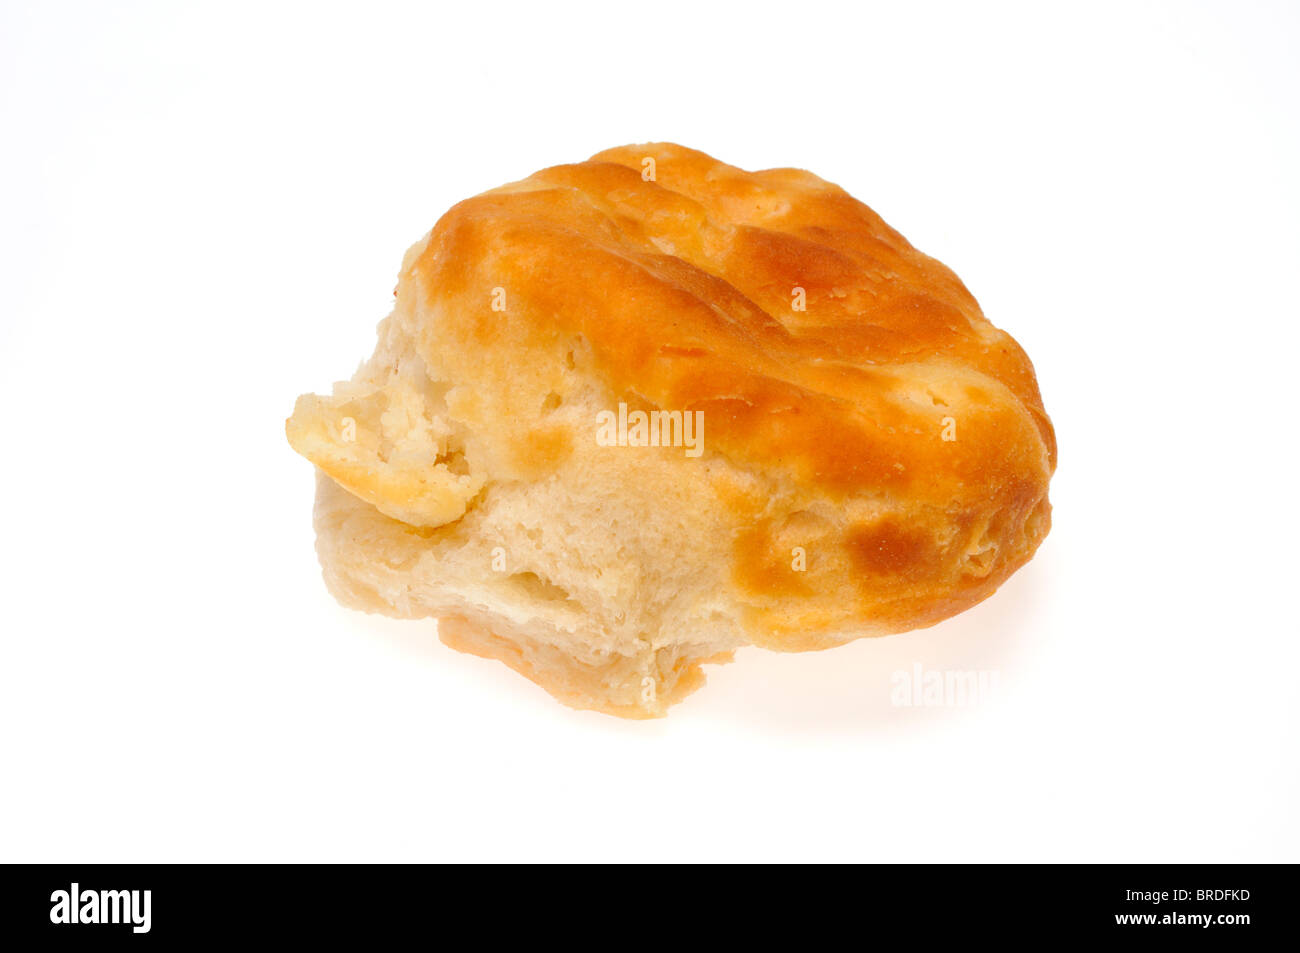 Single kfc baked, flaky buttermilk biscuit on white background, cutout. - Stock Image